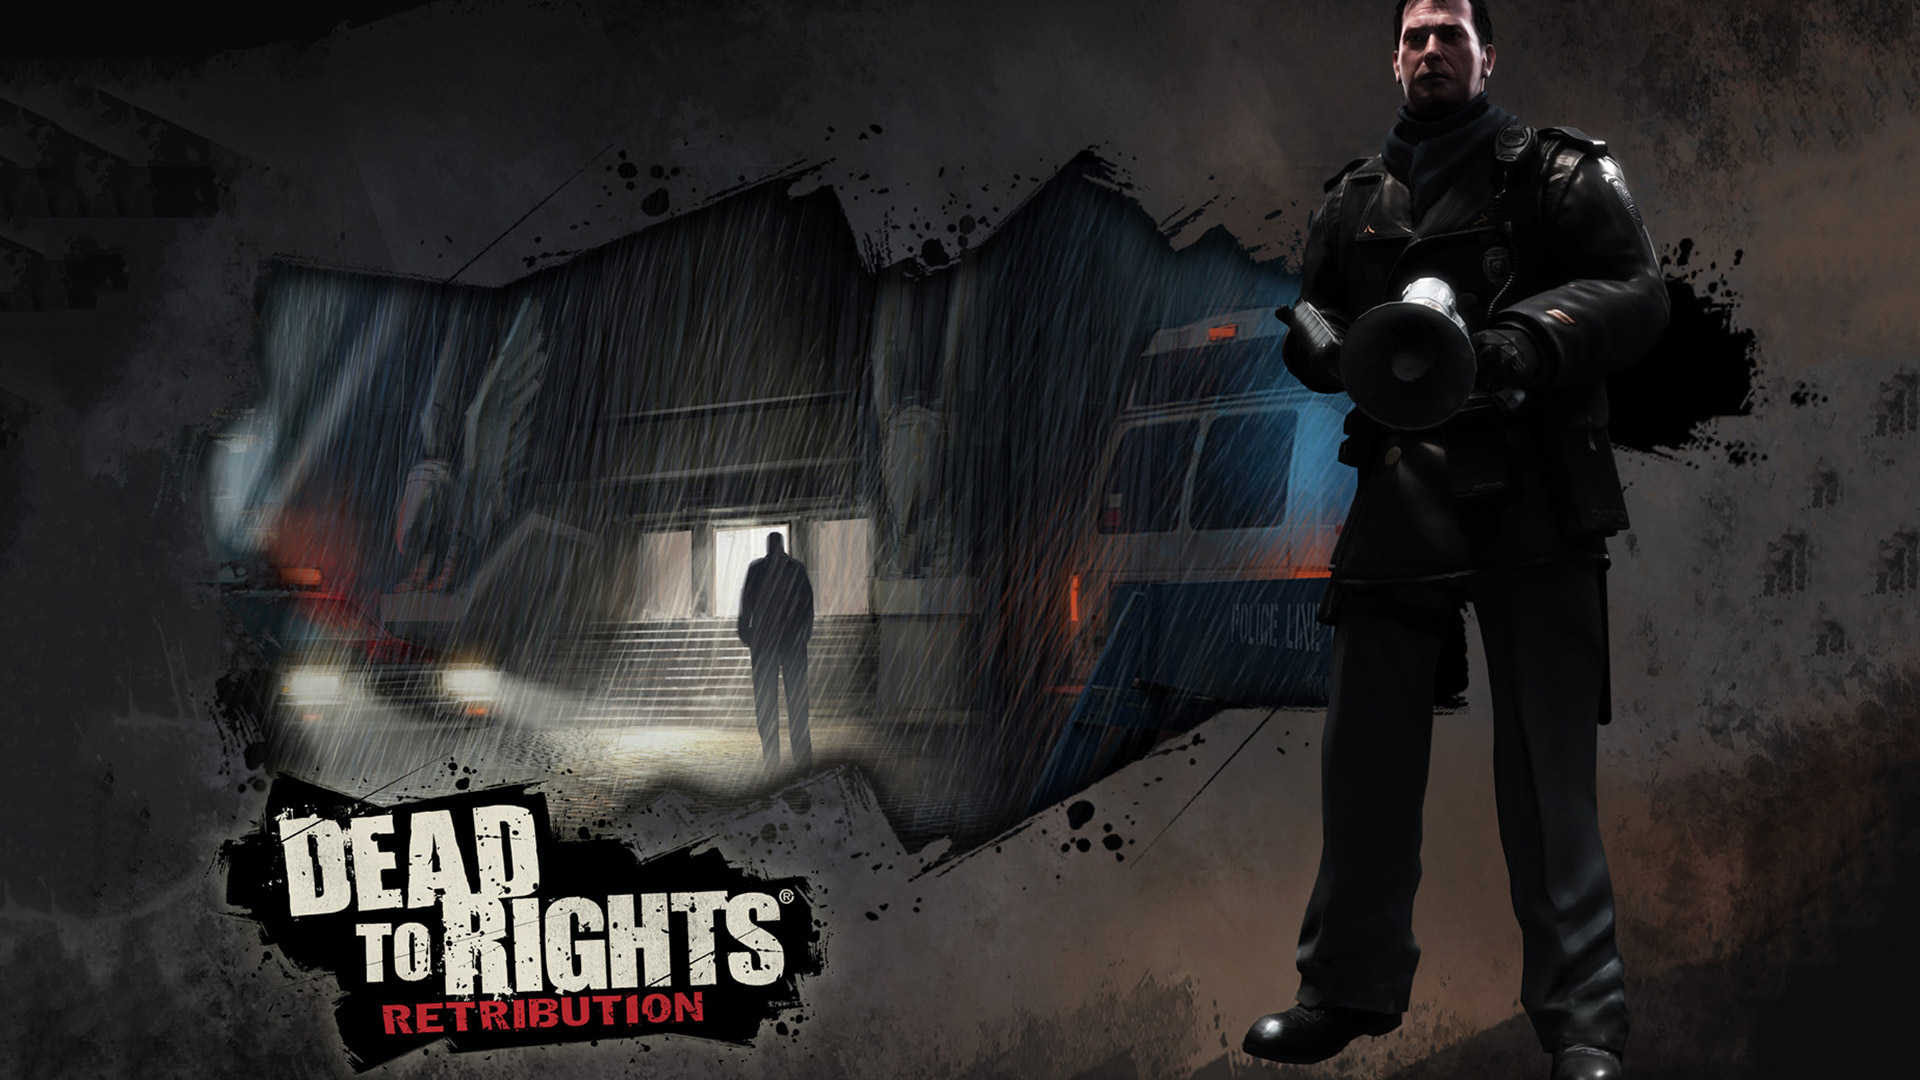 Dead to Rights: Retribution Wallpaper in 1920x1080